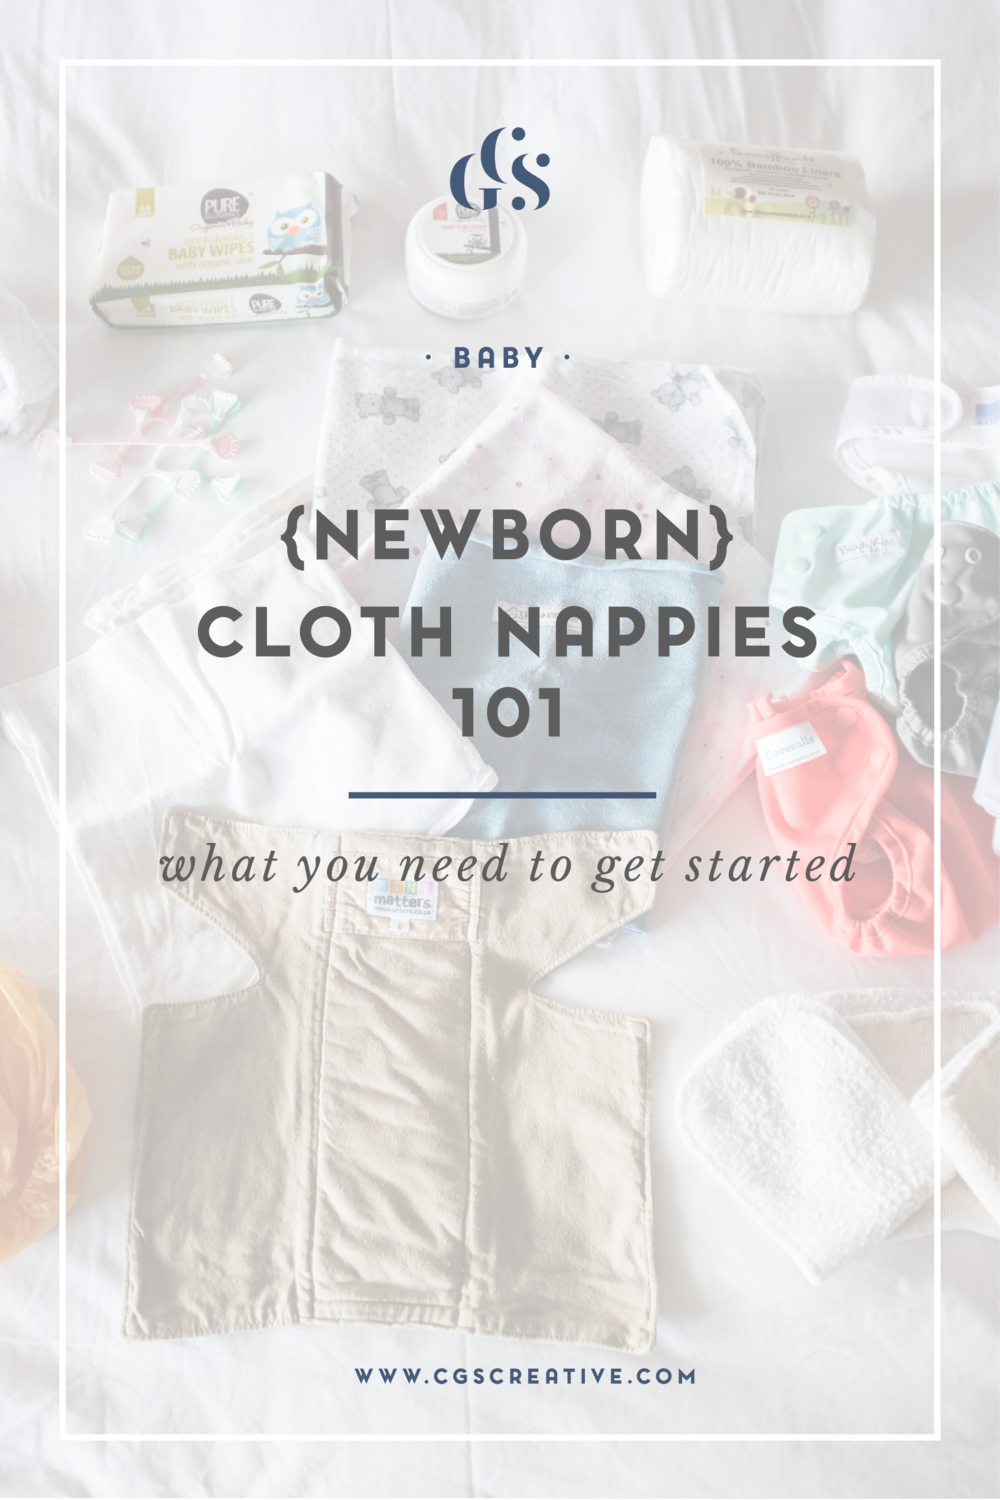 Cloth Nappies for Newborn what you need to get started_Artboard 2.png